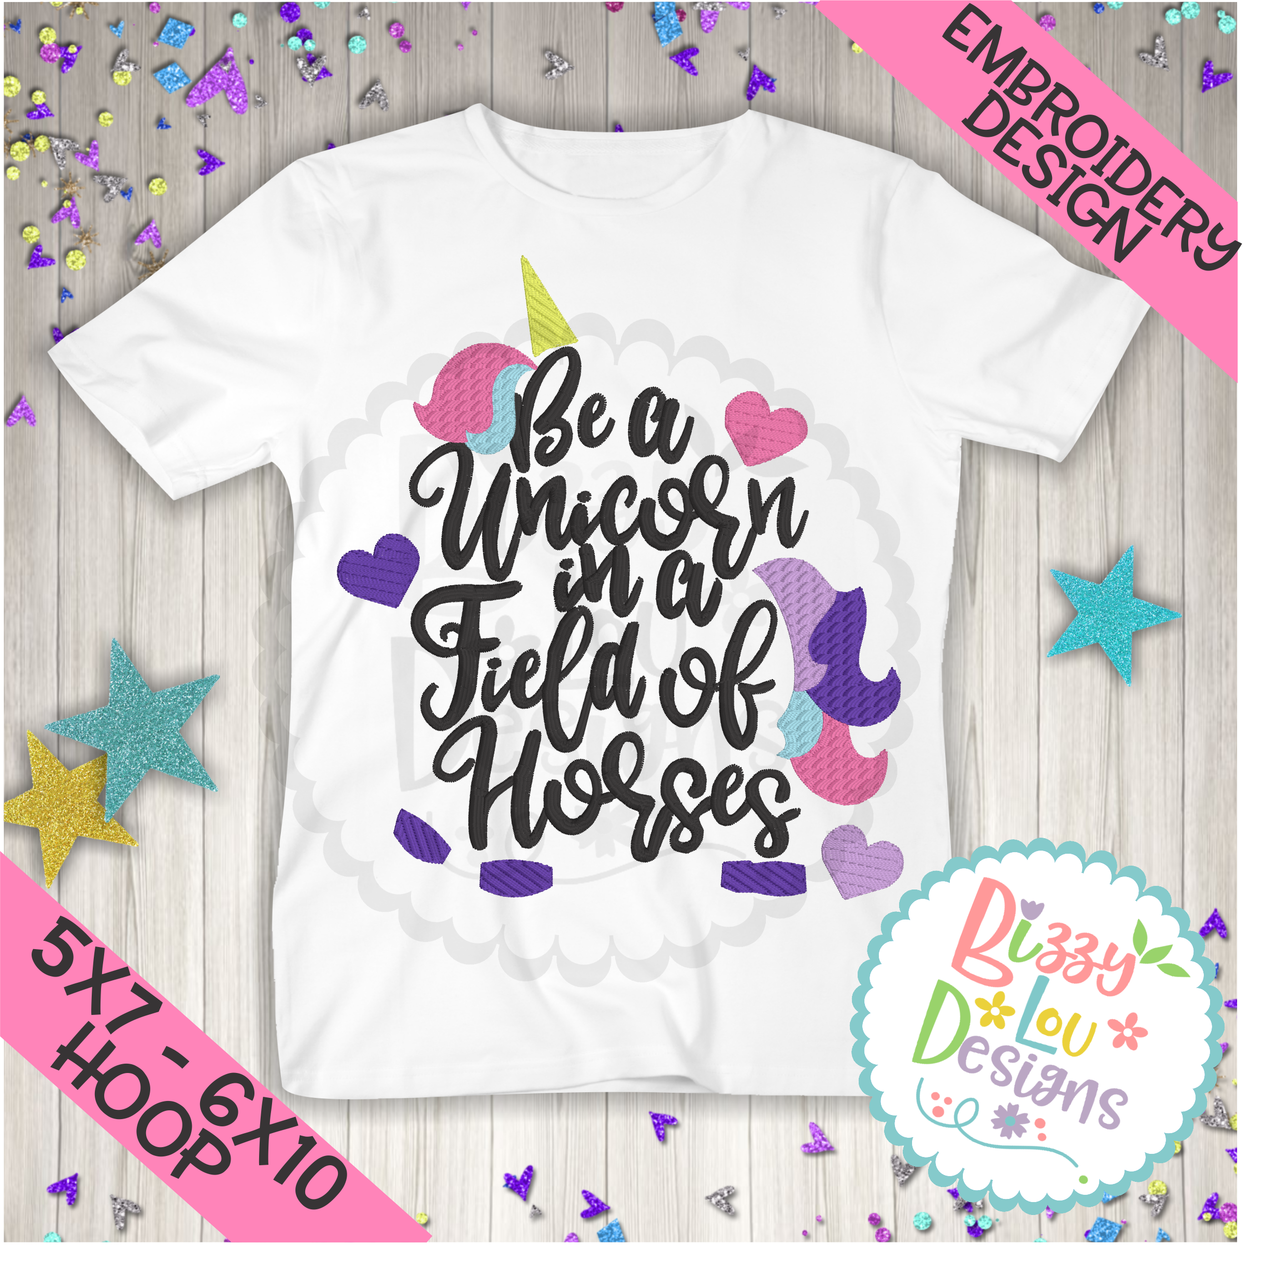 Be a unicorn in a field of horses embroidery design x u x hoops